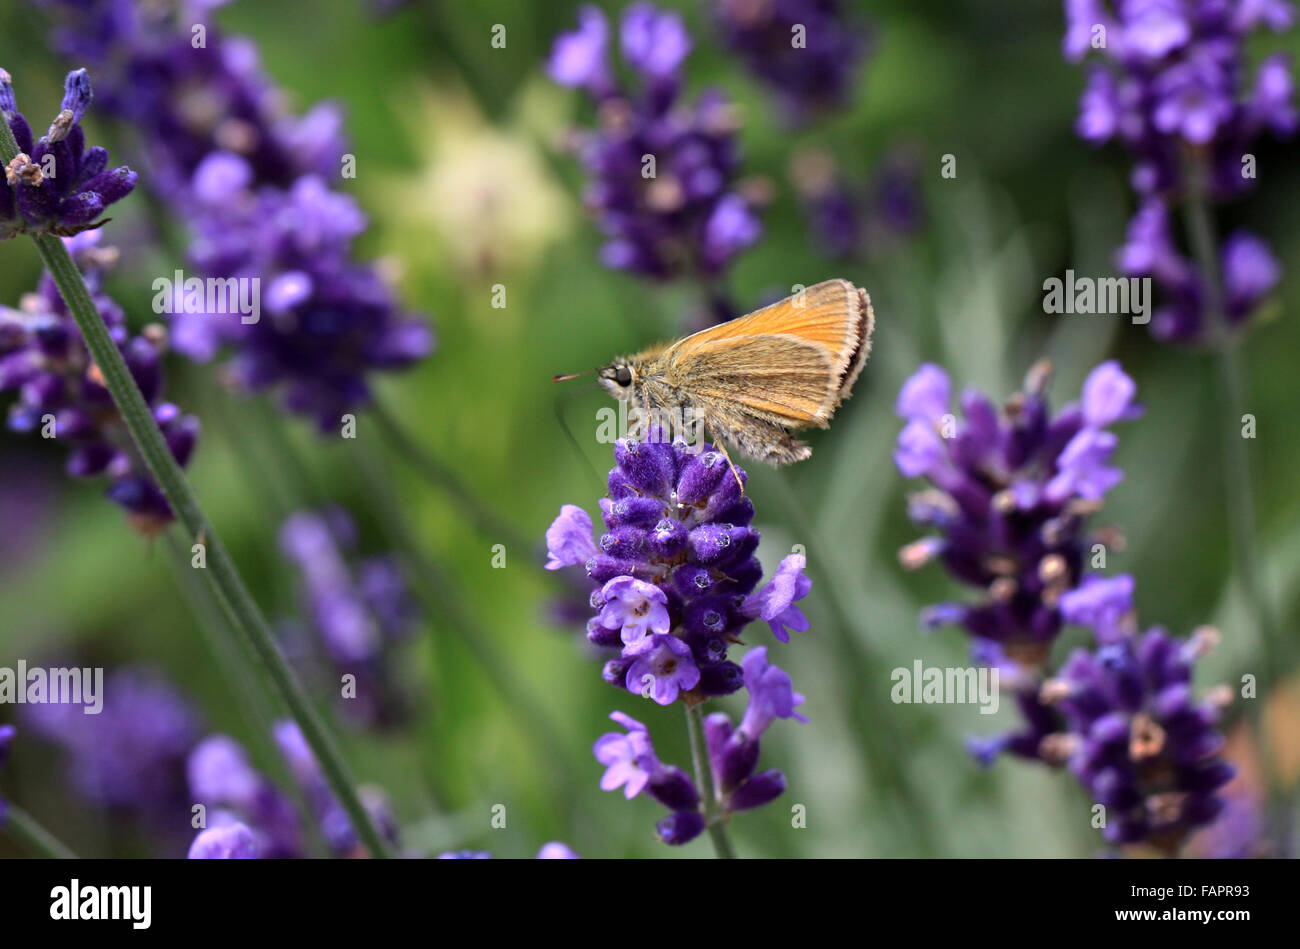 Small Skipper butterfly Thymelicus sylvestris on lavender flowers - Stock Image